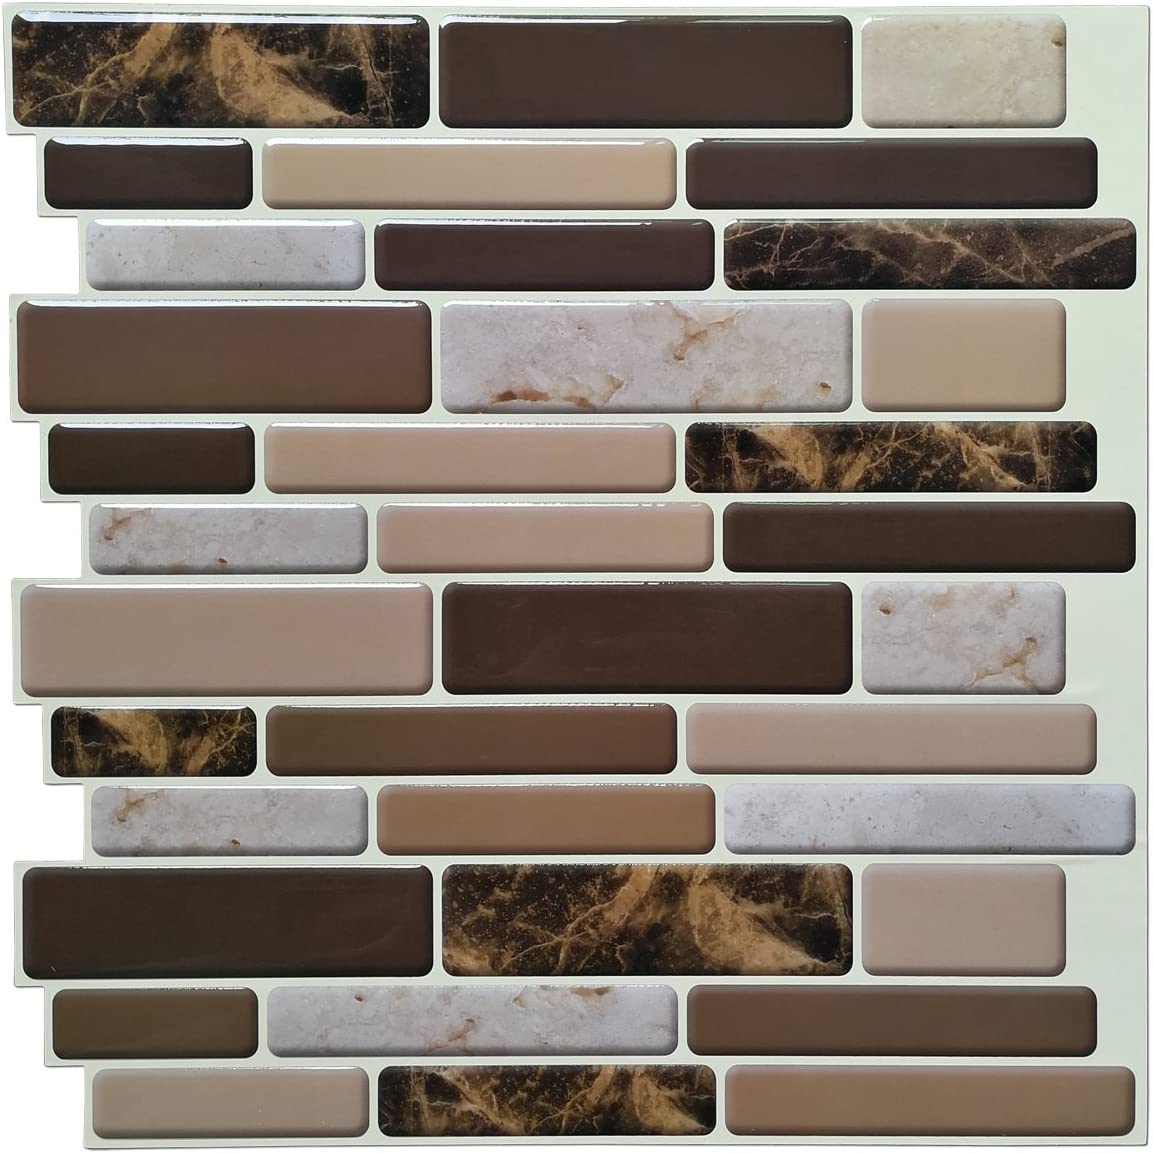 - Amazon.com: Art3d Kitchen Backsplash Tiles Peel And Stick Wall